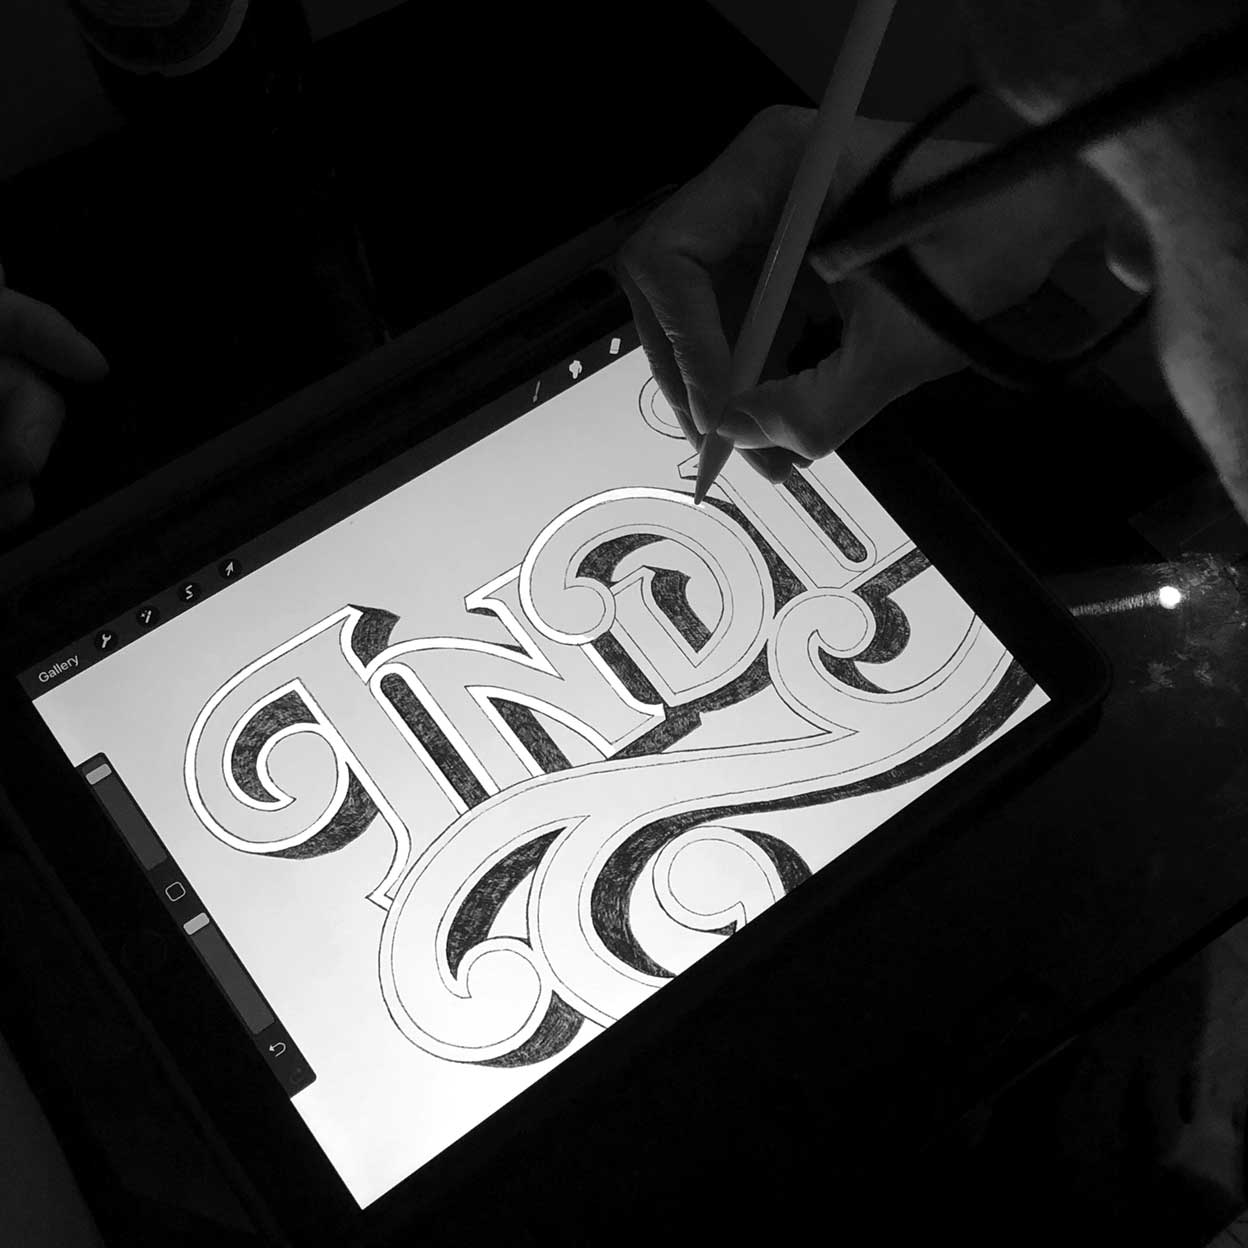 India Custom Lettering by Dan Forster